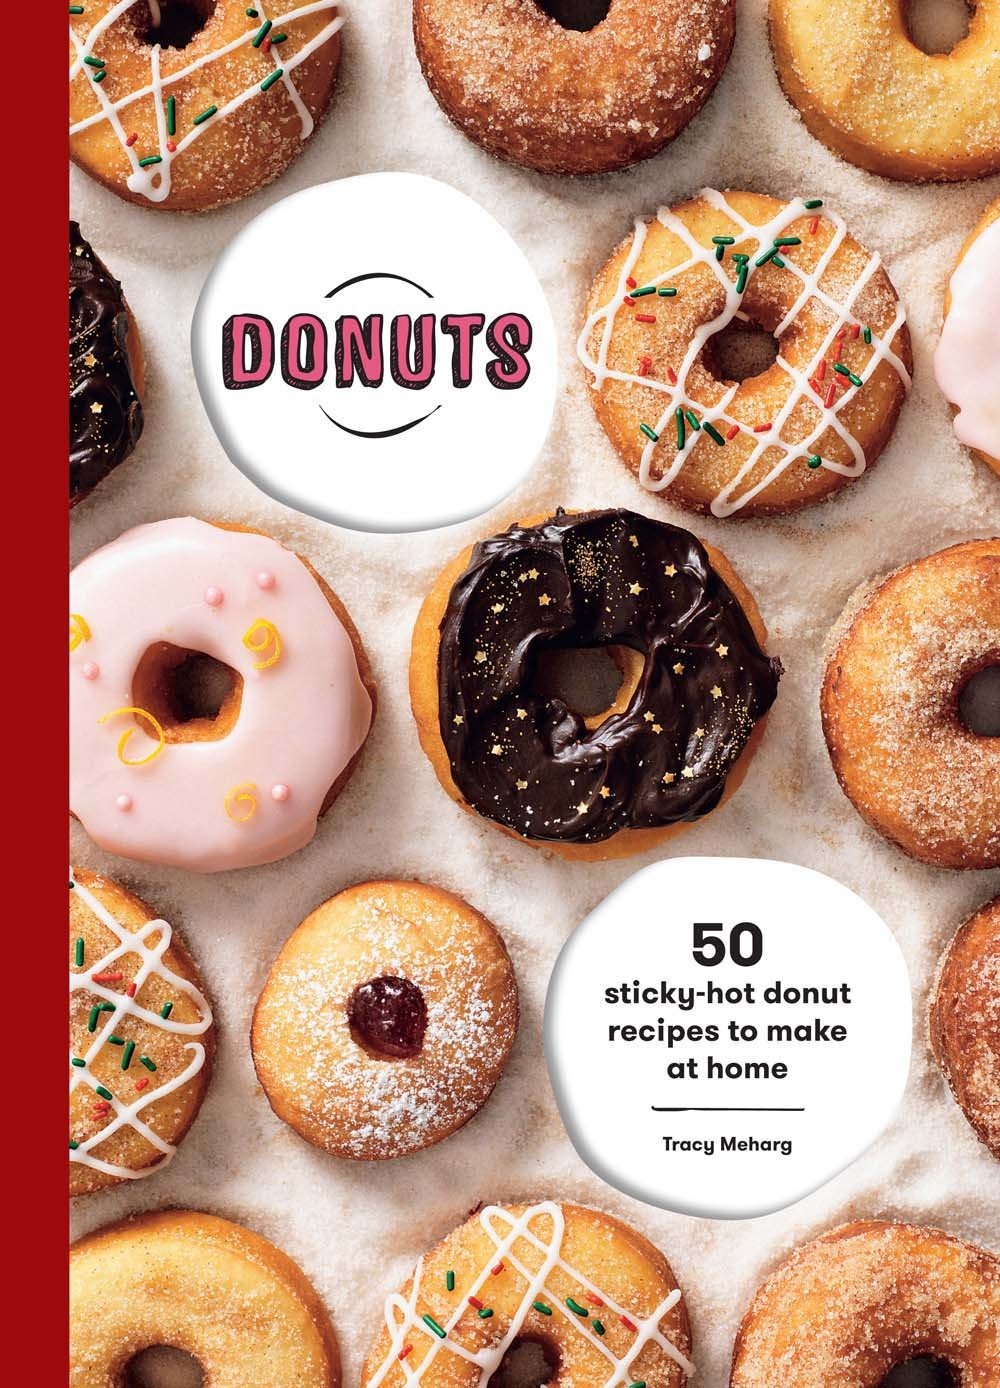 Donuts: 50 Sticky-Hot Donut Recipes to Make at Home: Amazon.es: Tracey Meharg: Libros en idiomas extranjeros